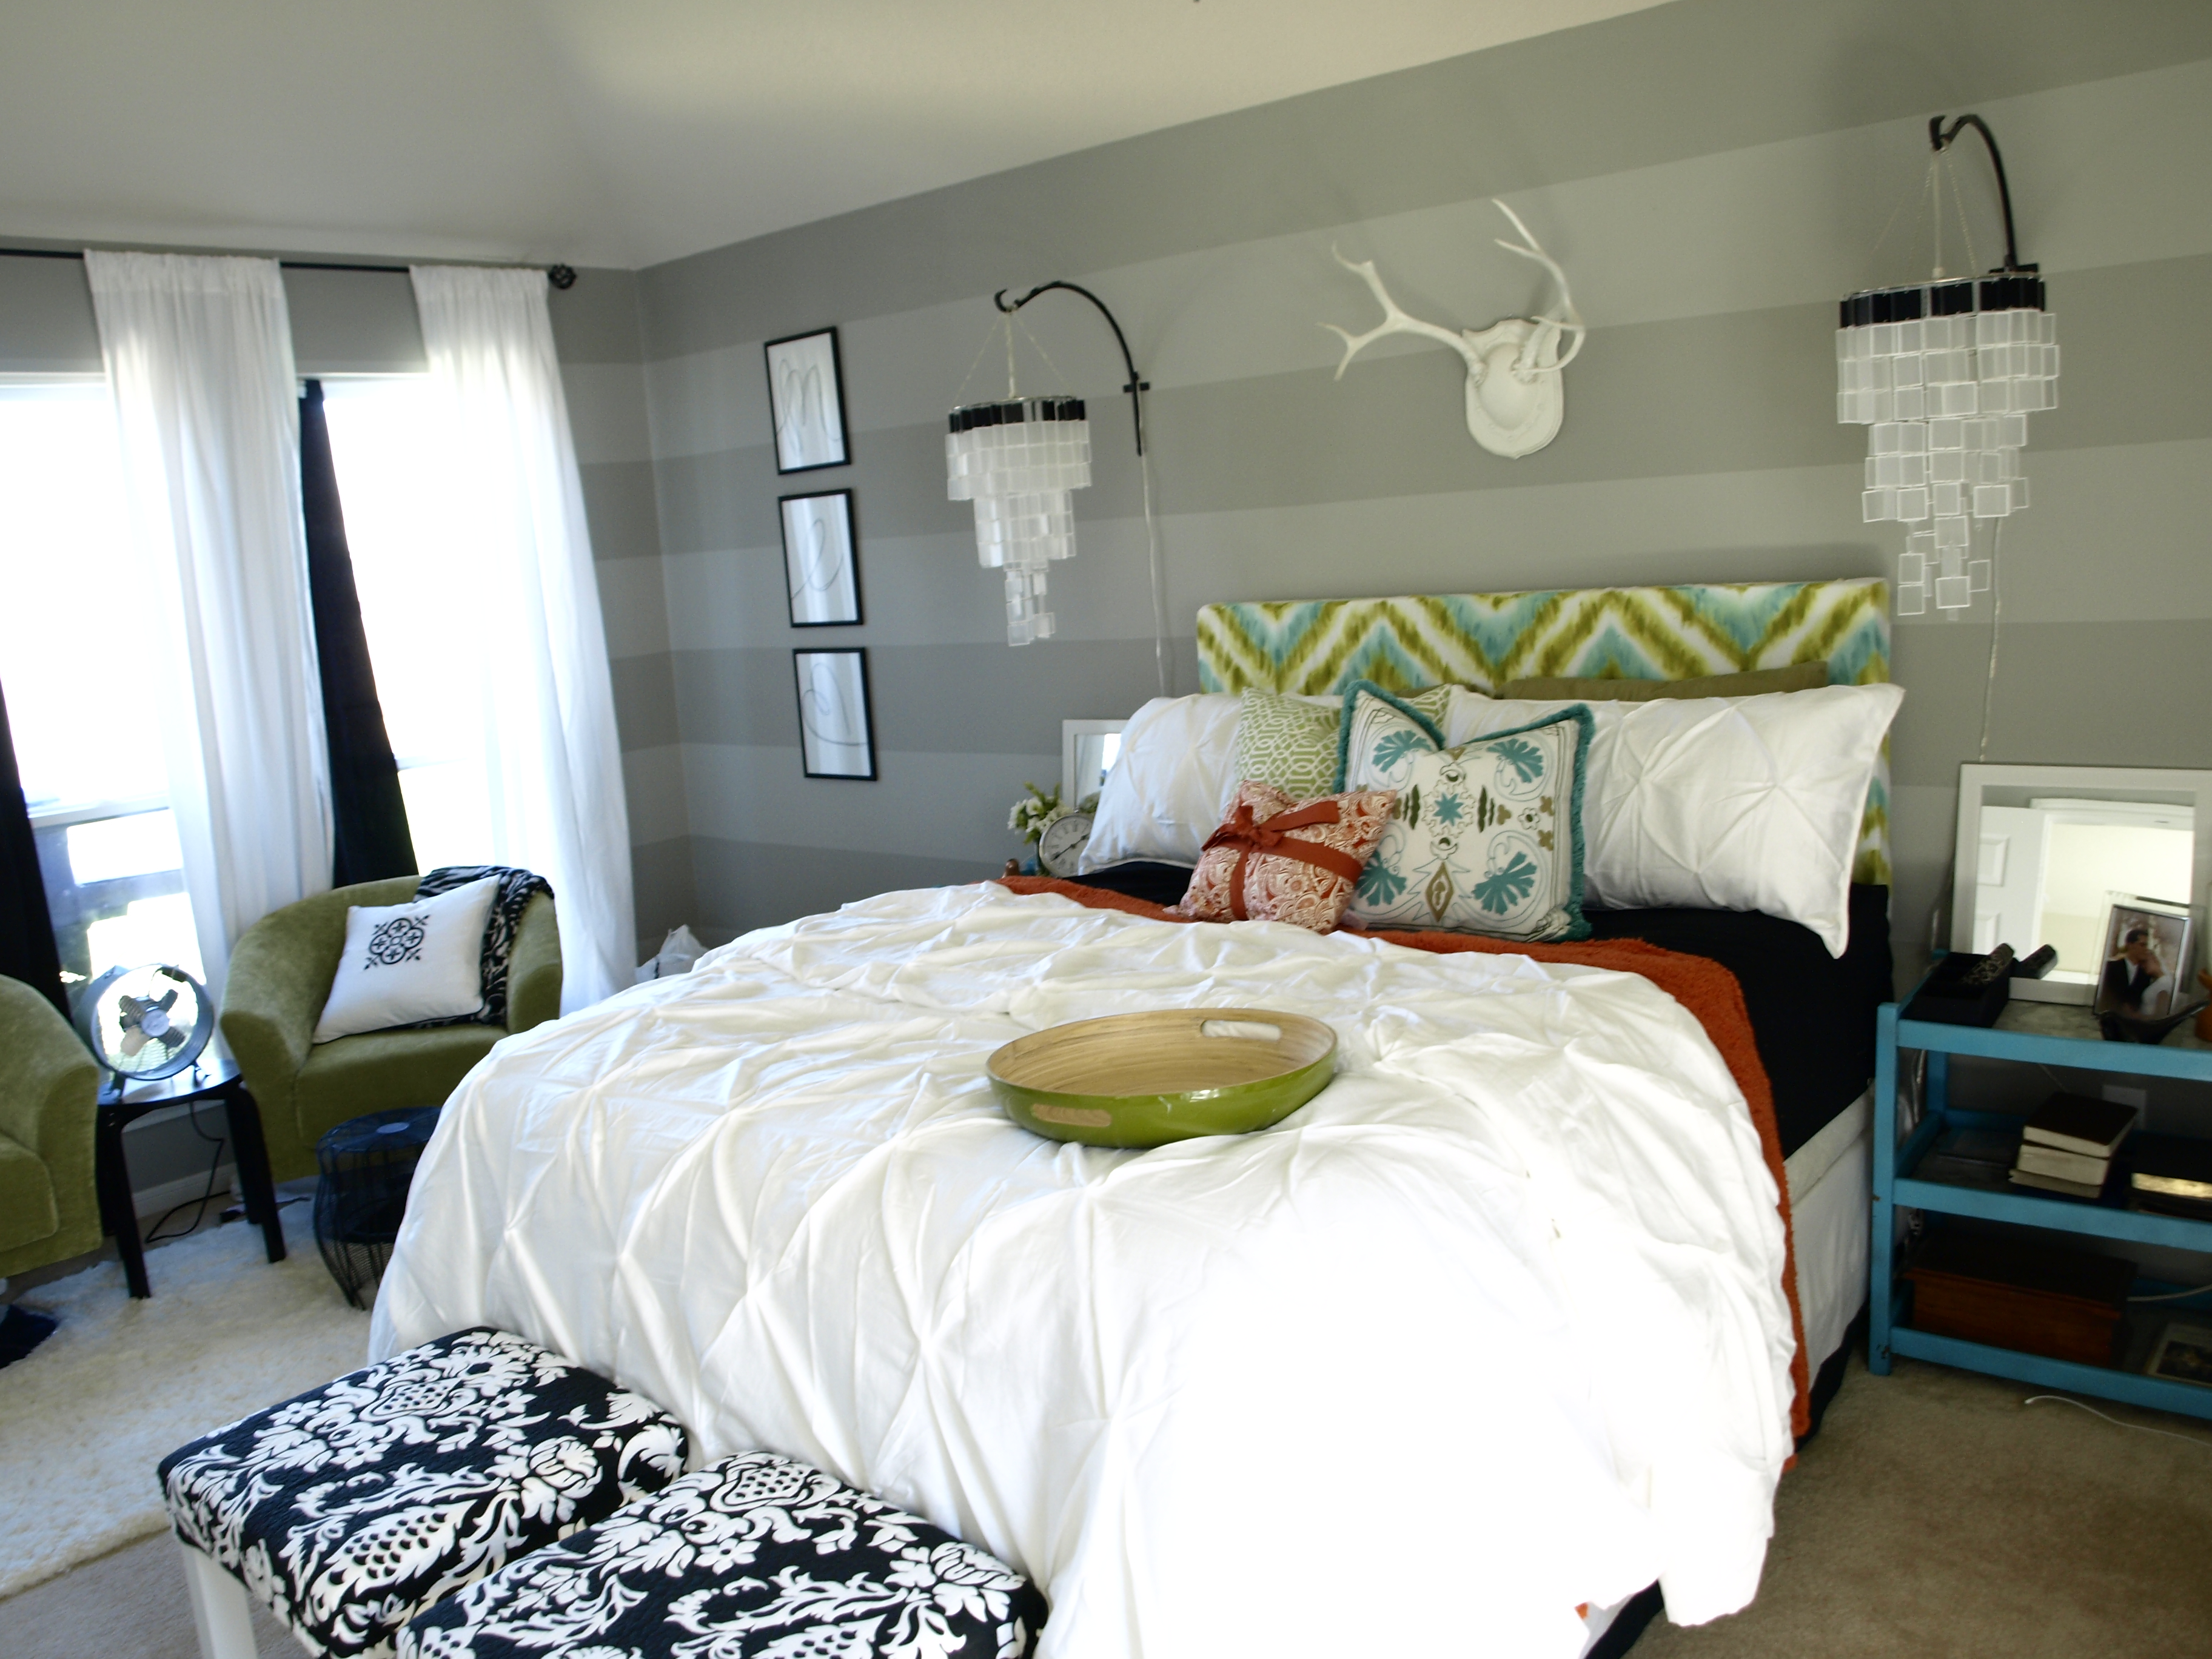 "Bedroom Redo Happy Chic"" Bedroom Makeover  Diy Bedroom Makeover On A Budget"